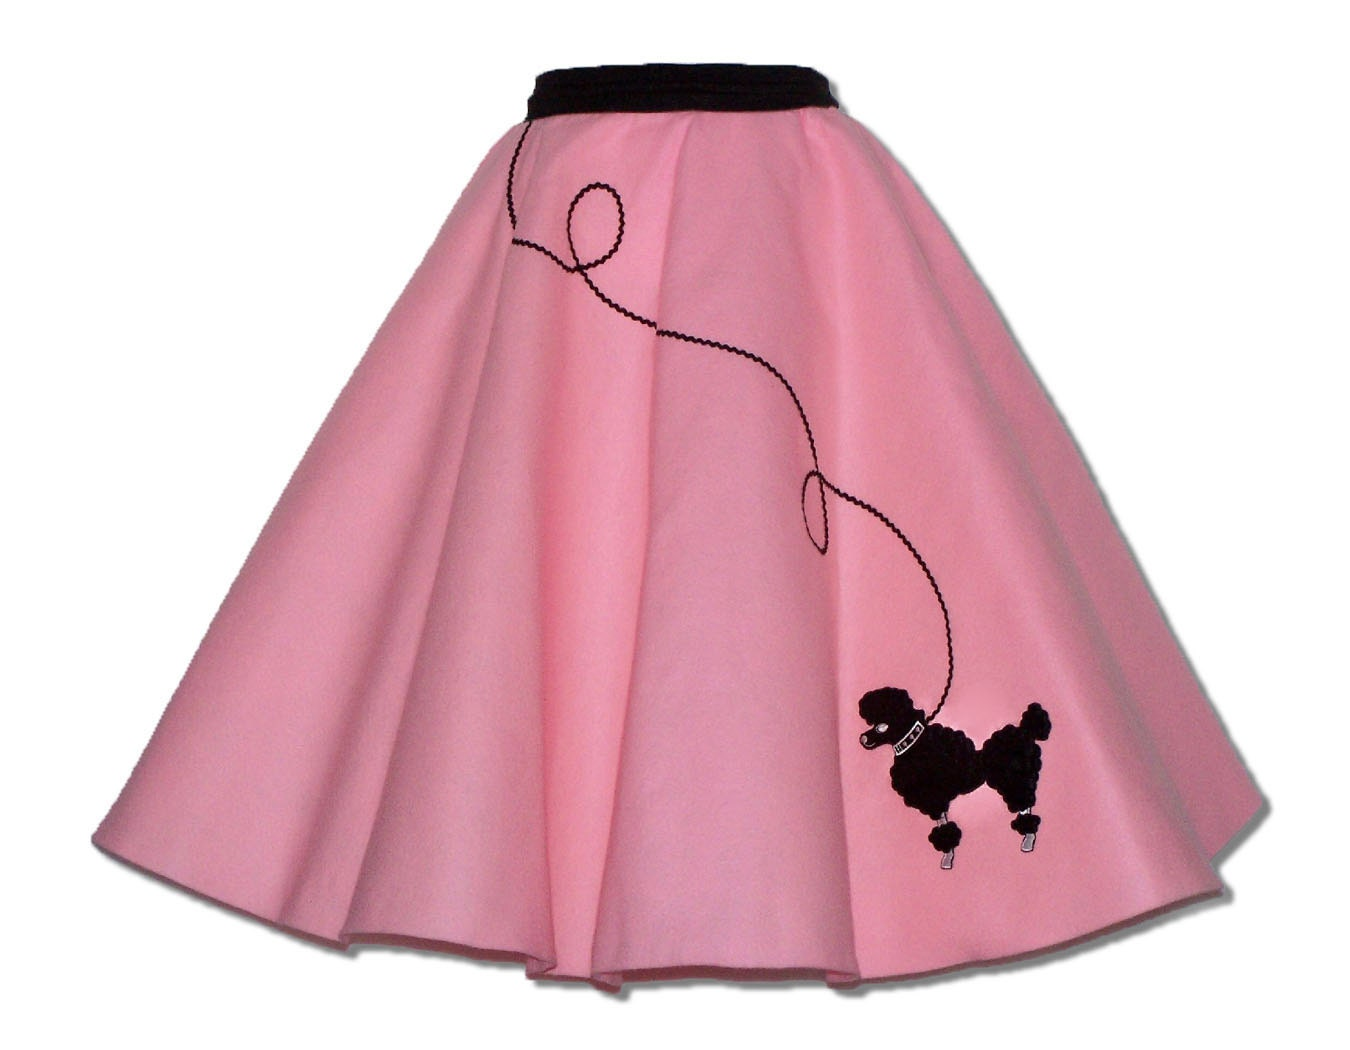 How to make a no sew poodle skirt for adults